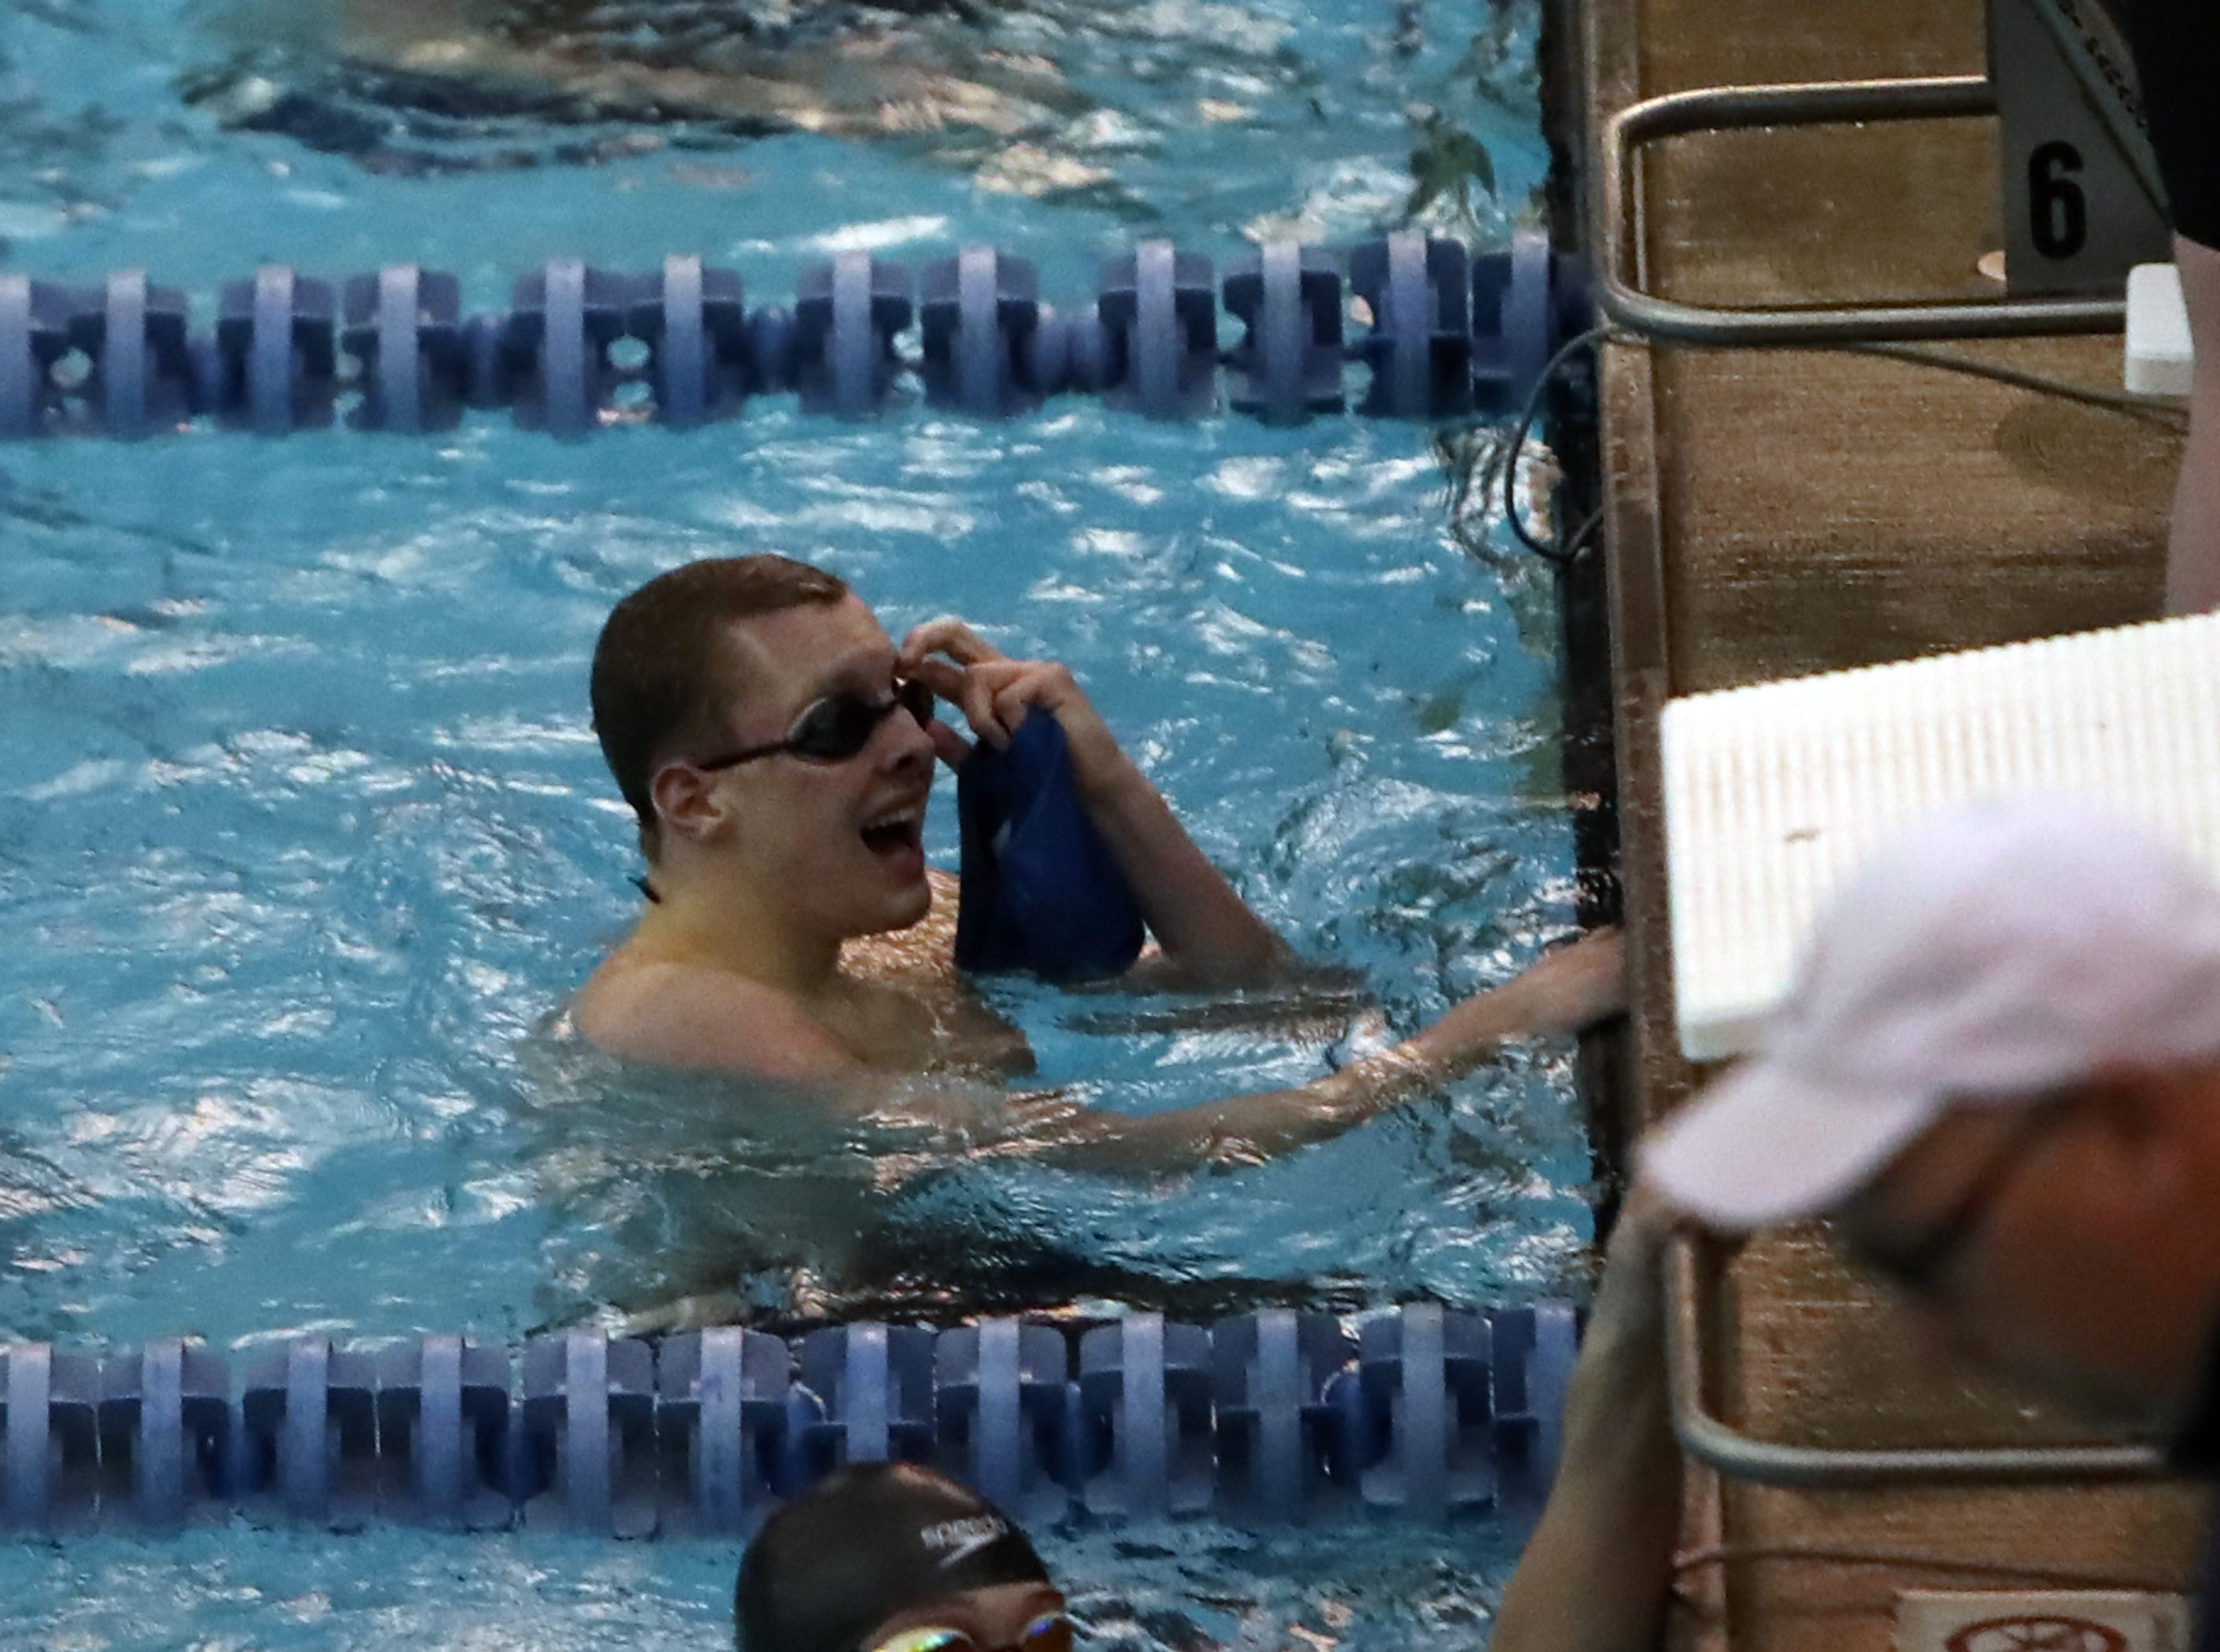 Highlands' Brendan Conley looks up at the scoreboard to see he has won the Boys 200 yard Freestyle at the Regional Final at the KHSAA Regional Swimming Finals in Erlanger, Kentucky.